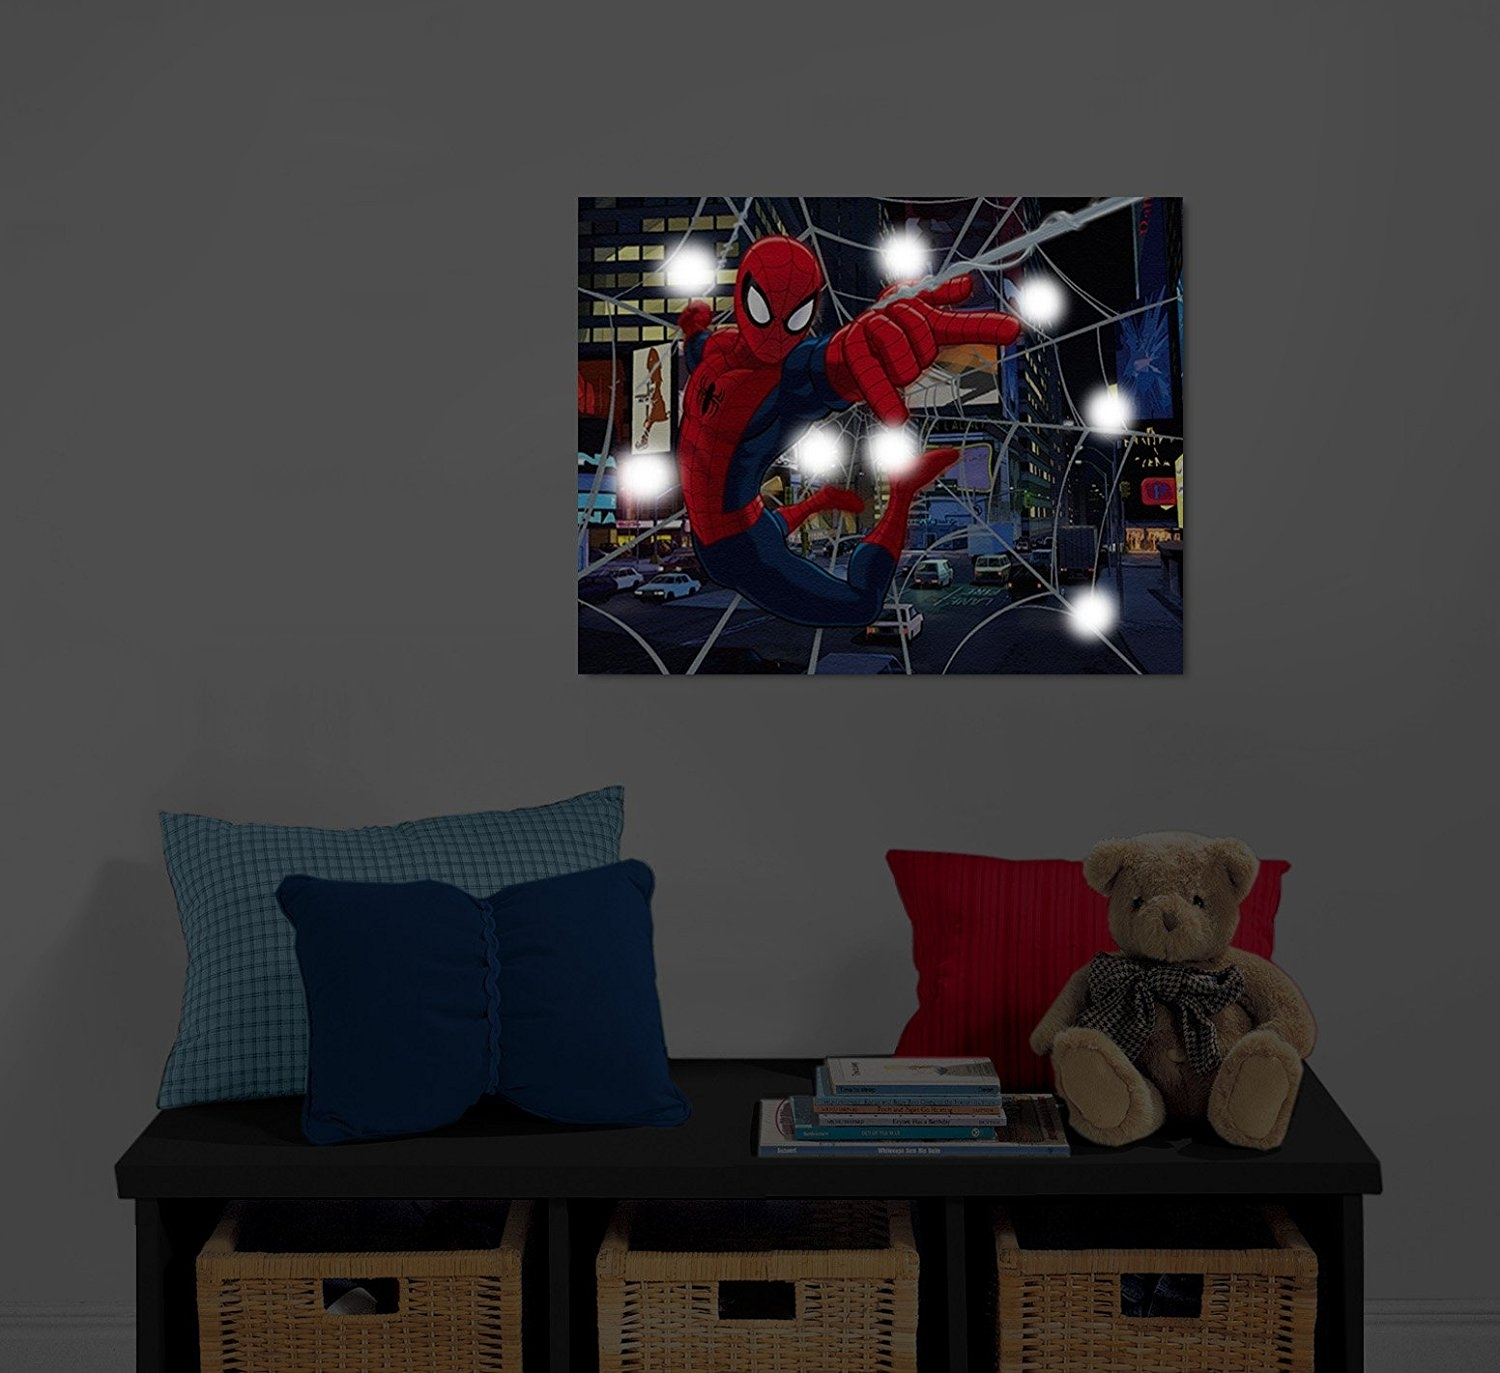 Marvel Spiderman Light Up Canvas Wall Art With Bonus Led Lights Pertaining To Current Marvel Canvas Wall Art (View 14 of 15)